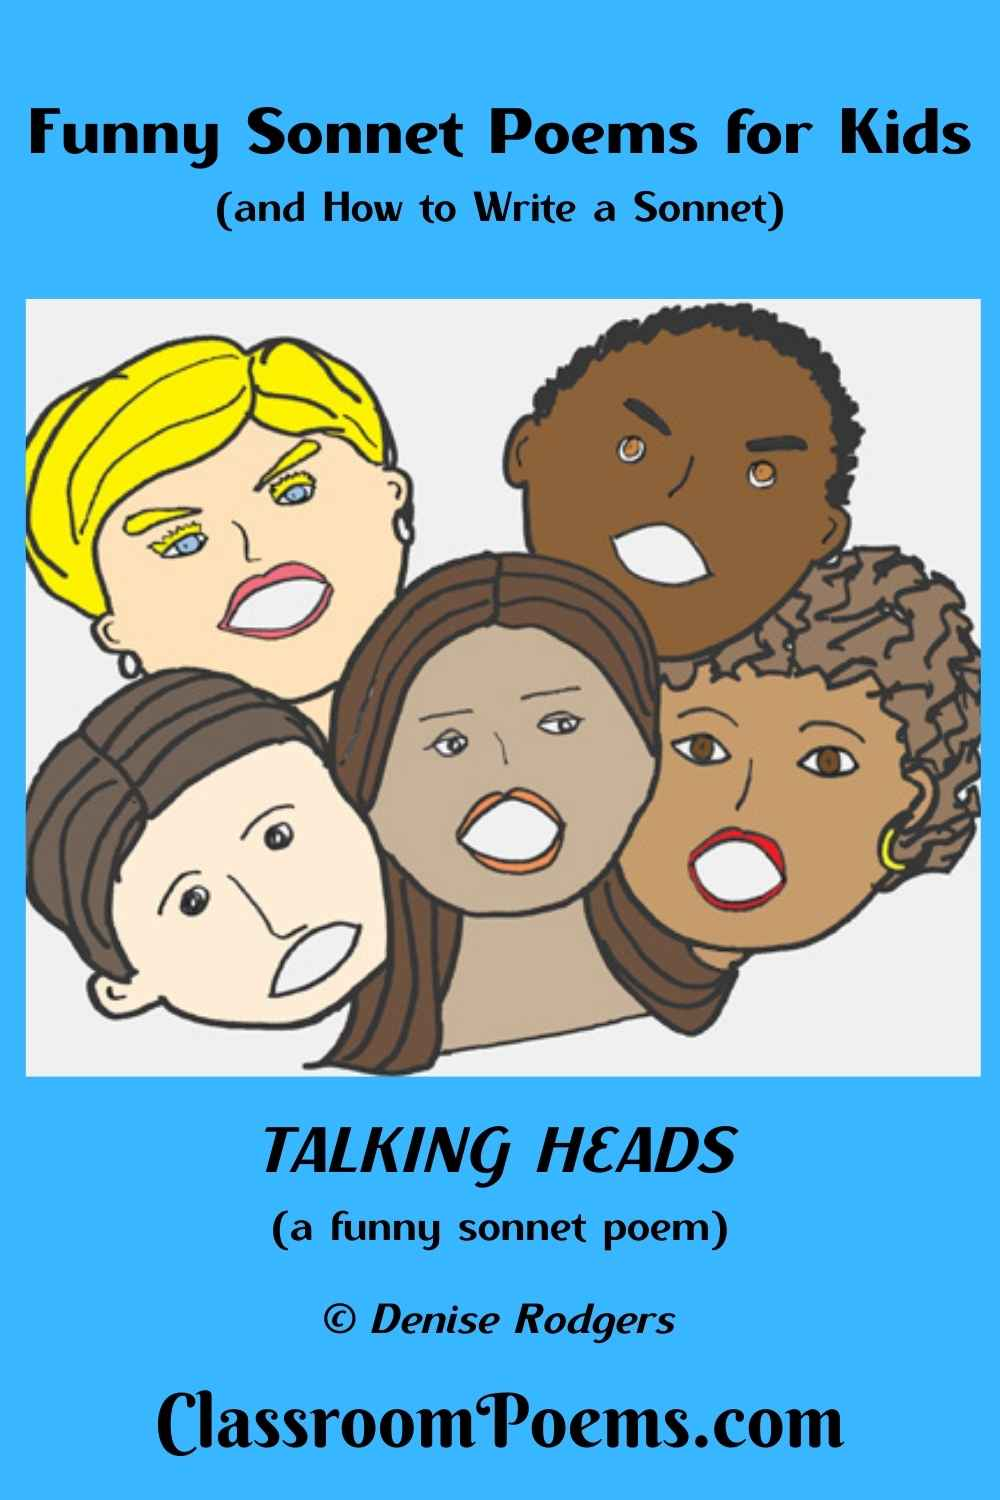 TALKING HEADS, a funny sonnet poem by The Poetry Lady Denise Rodgers on ClassroomPoems.com.